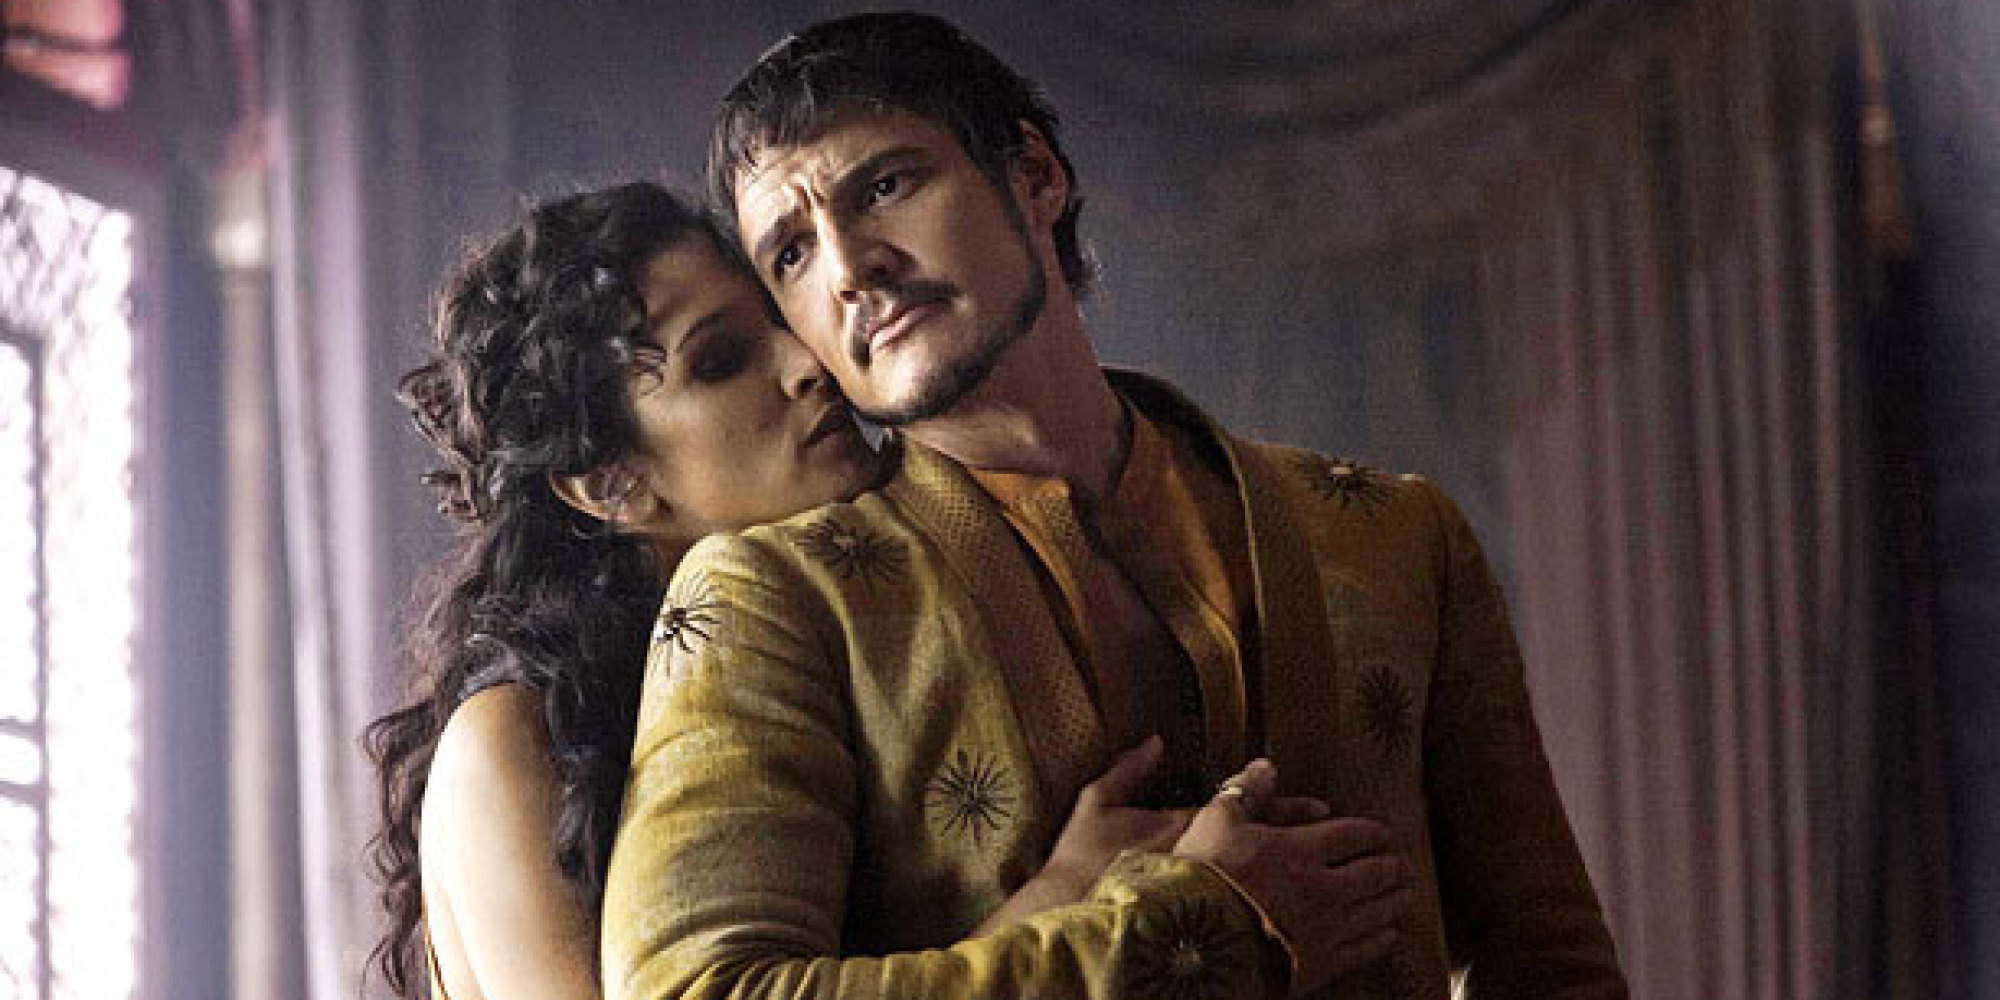 pedro pascal game of thrones